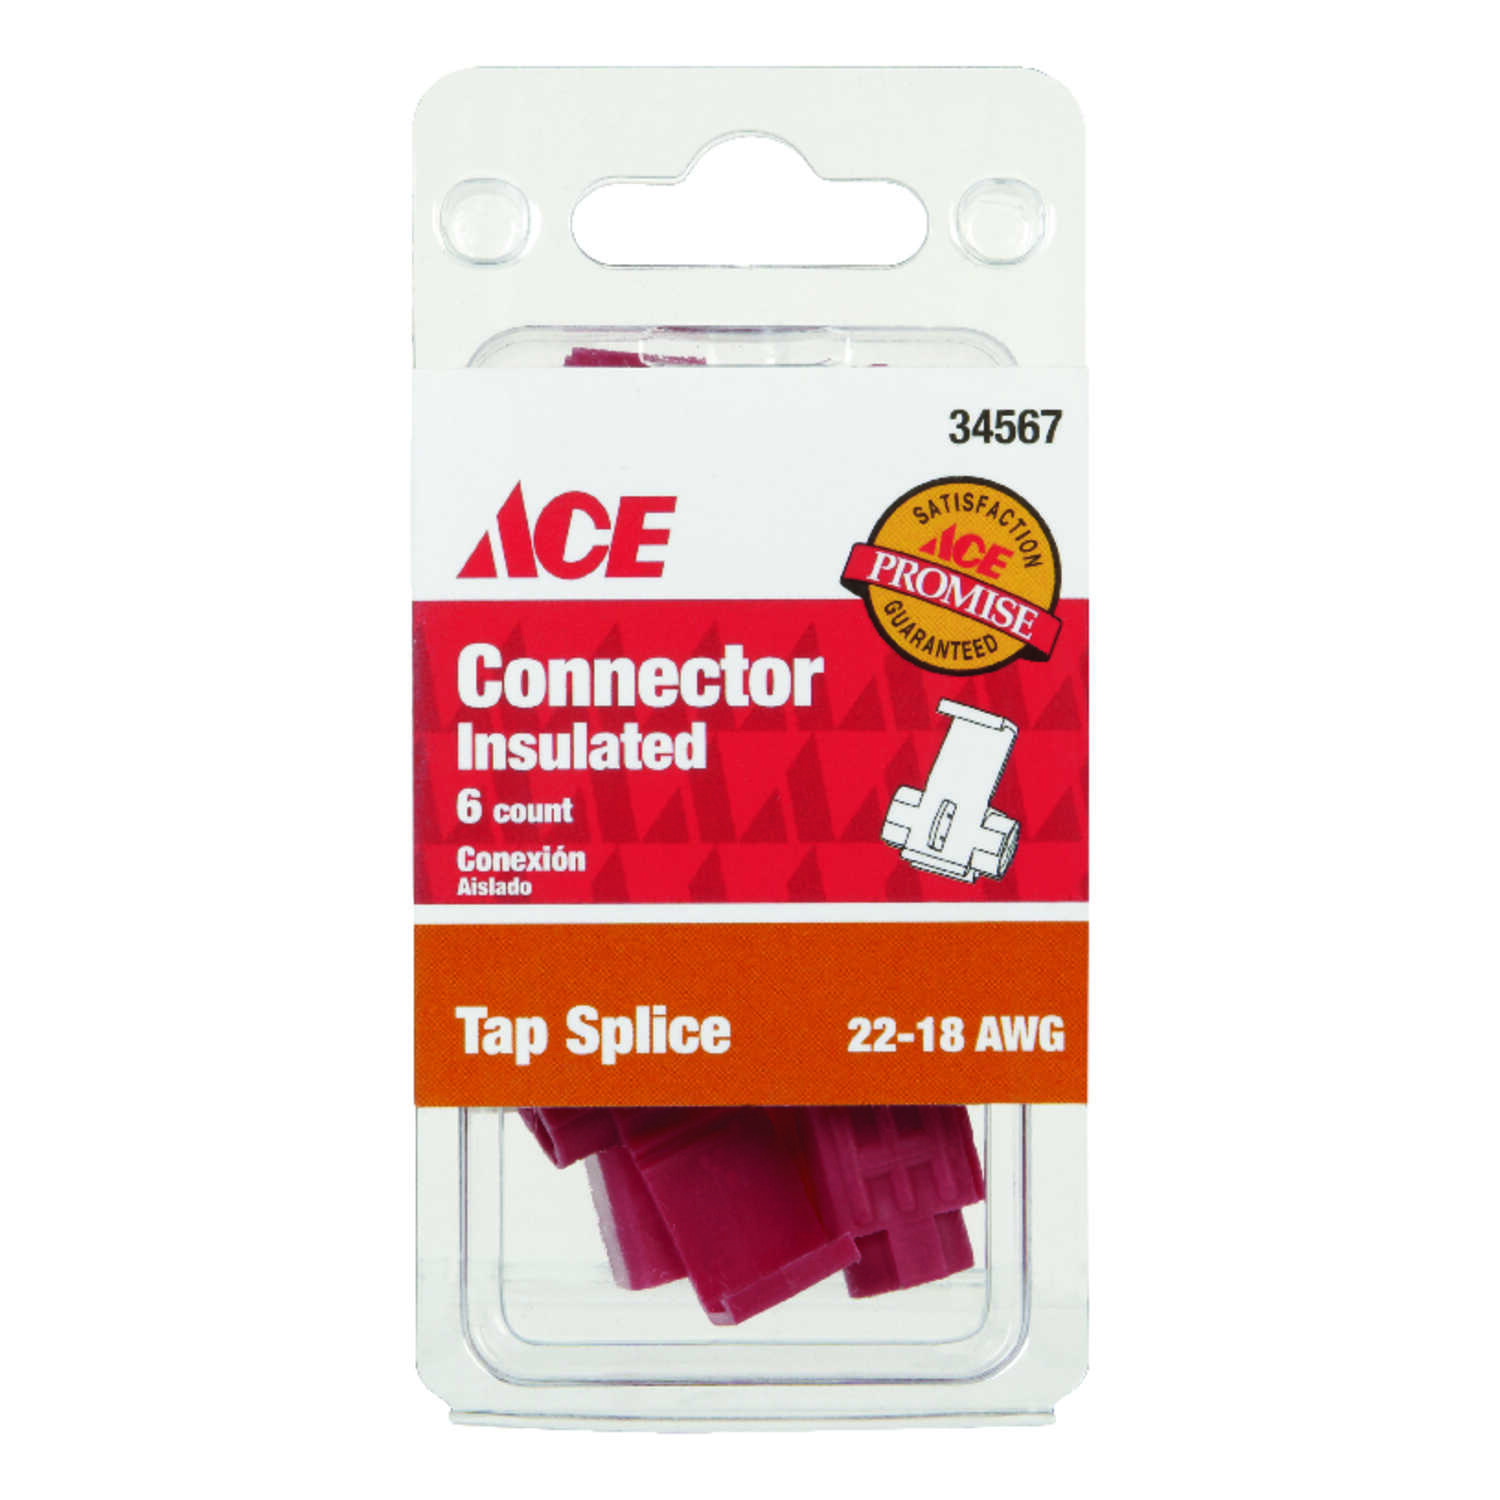 Ace  Tap Splice Connector  6  Insulated Wire  22-18 AWG